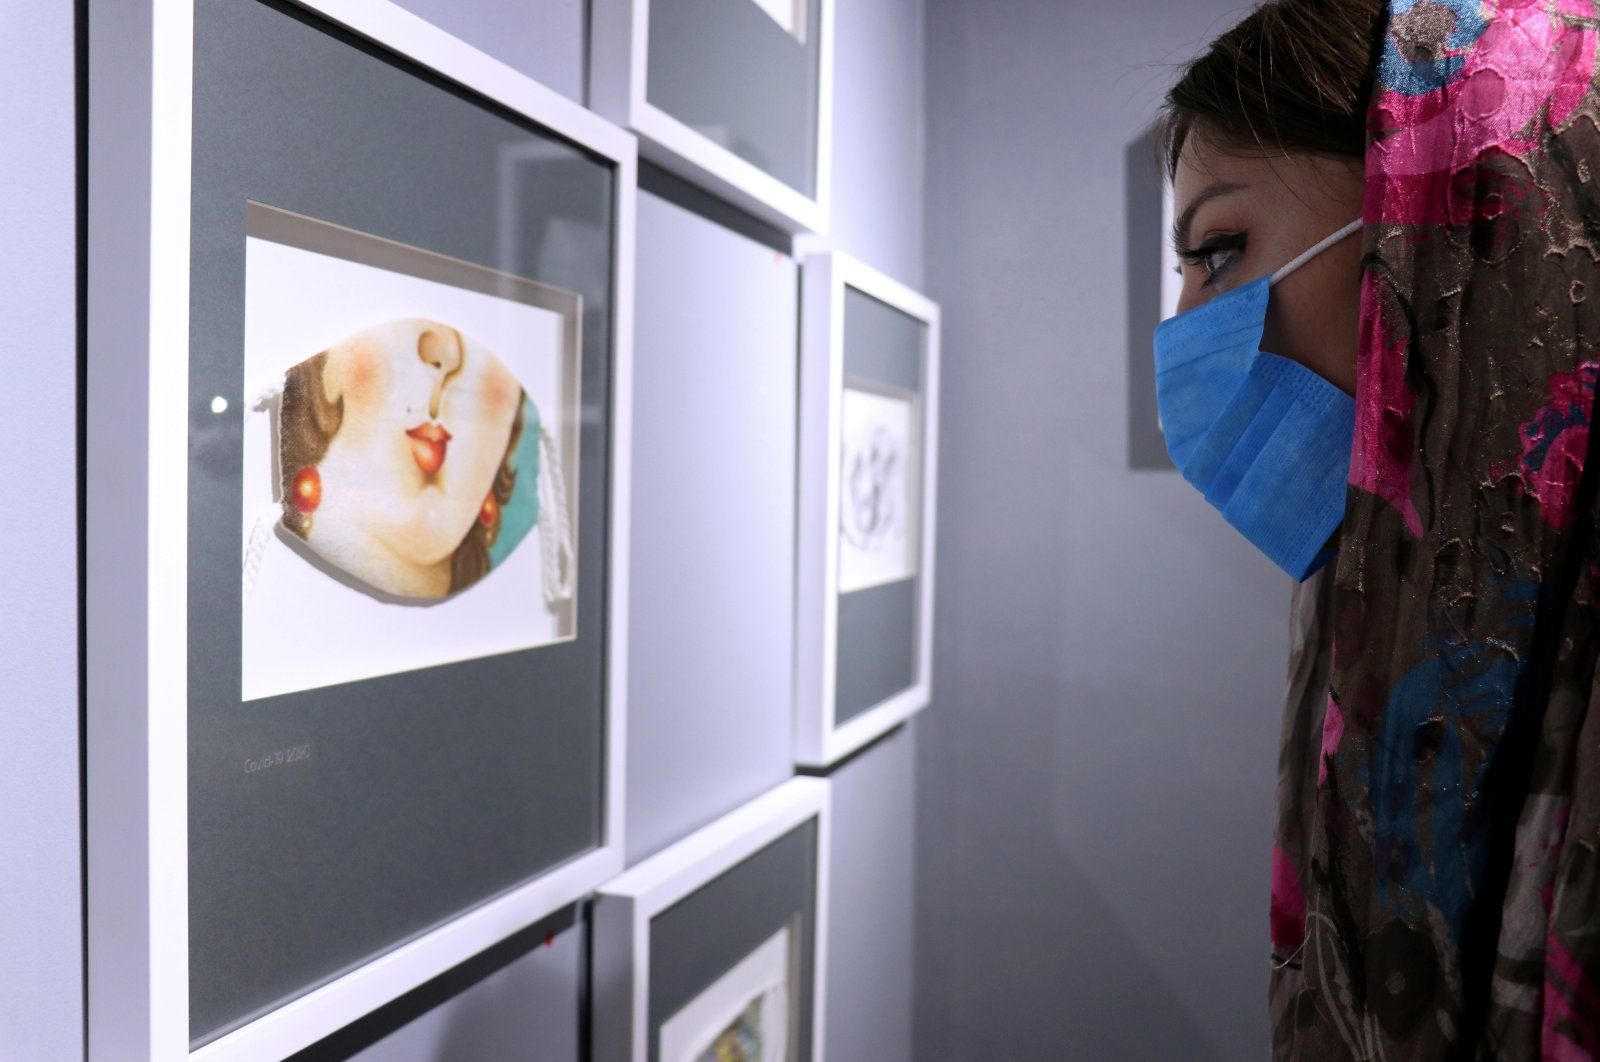 A woman looks at mask-themed artwork on display in an exhibition, following the outbreak of the coronavirus disease, in Tehran, July 18, 2020. (REUTERS)